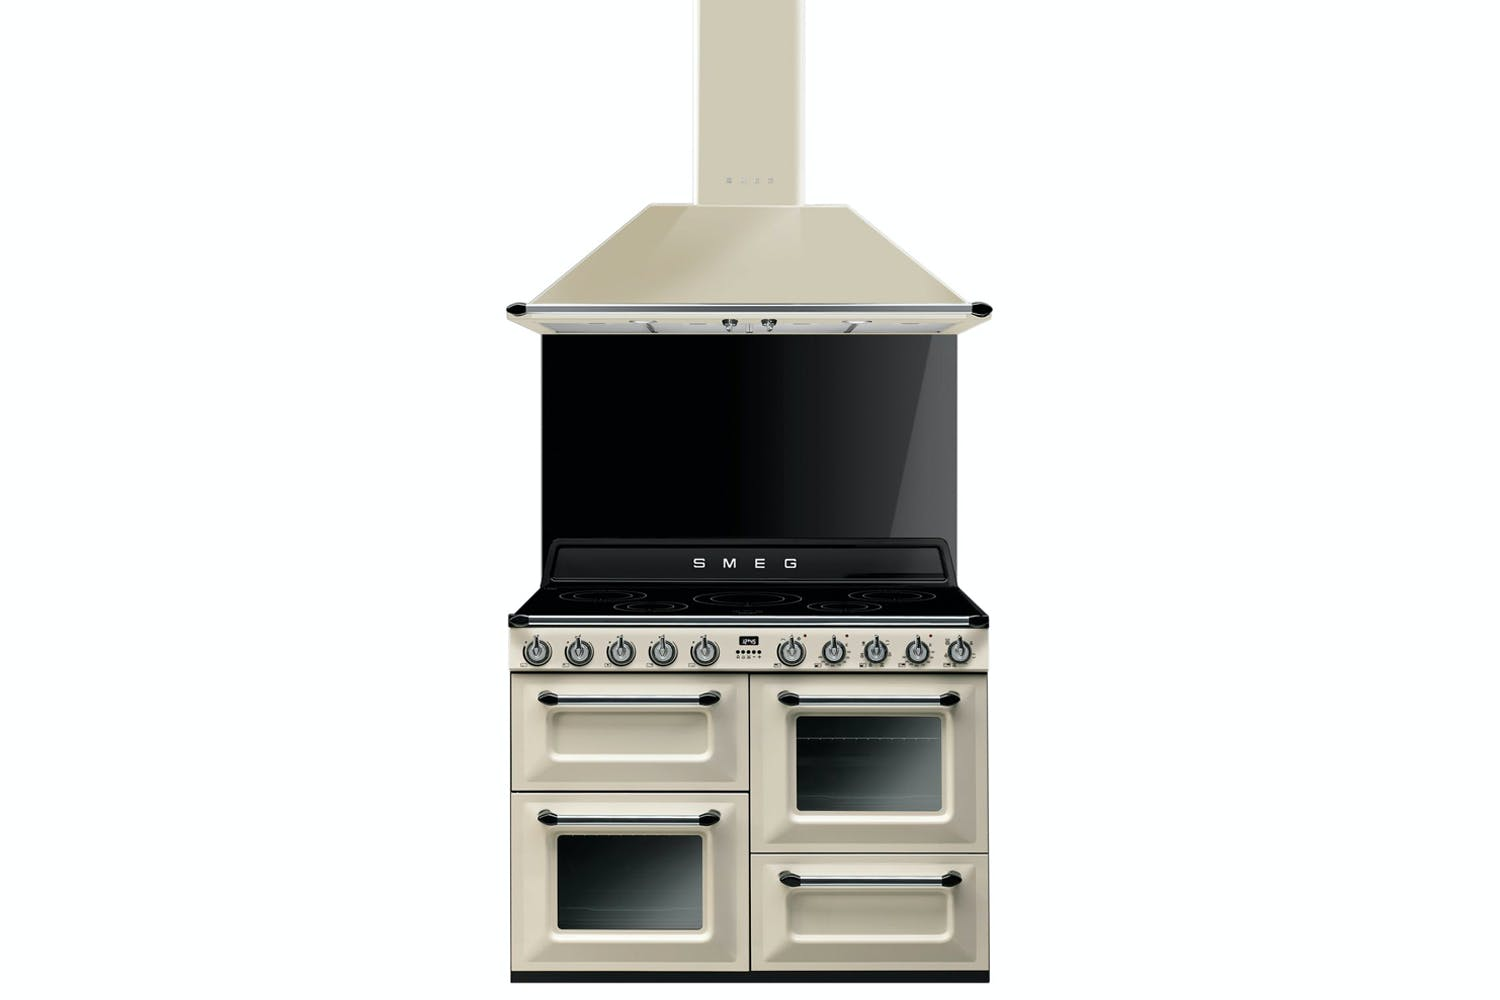 Smeg Victoria 110cm Induction Range Cooker Cream Ireland Freestanding Electric Oven Stove Stainless Steel Winning